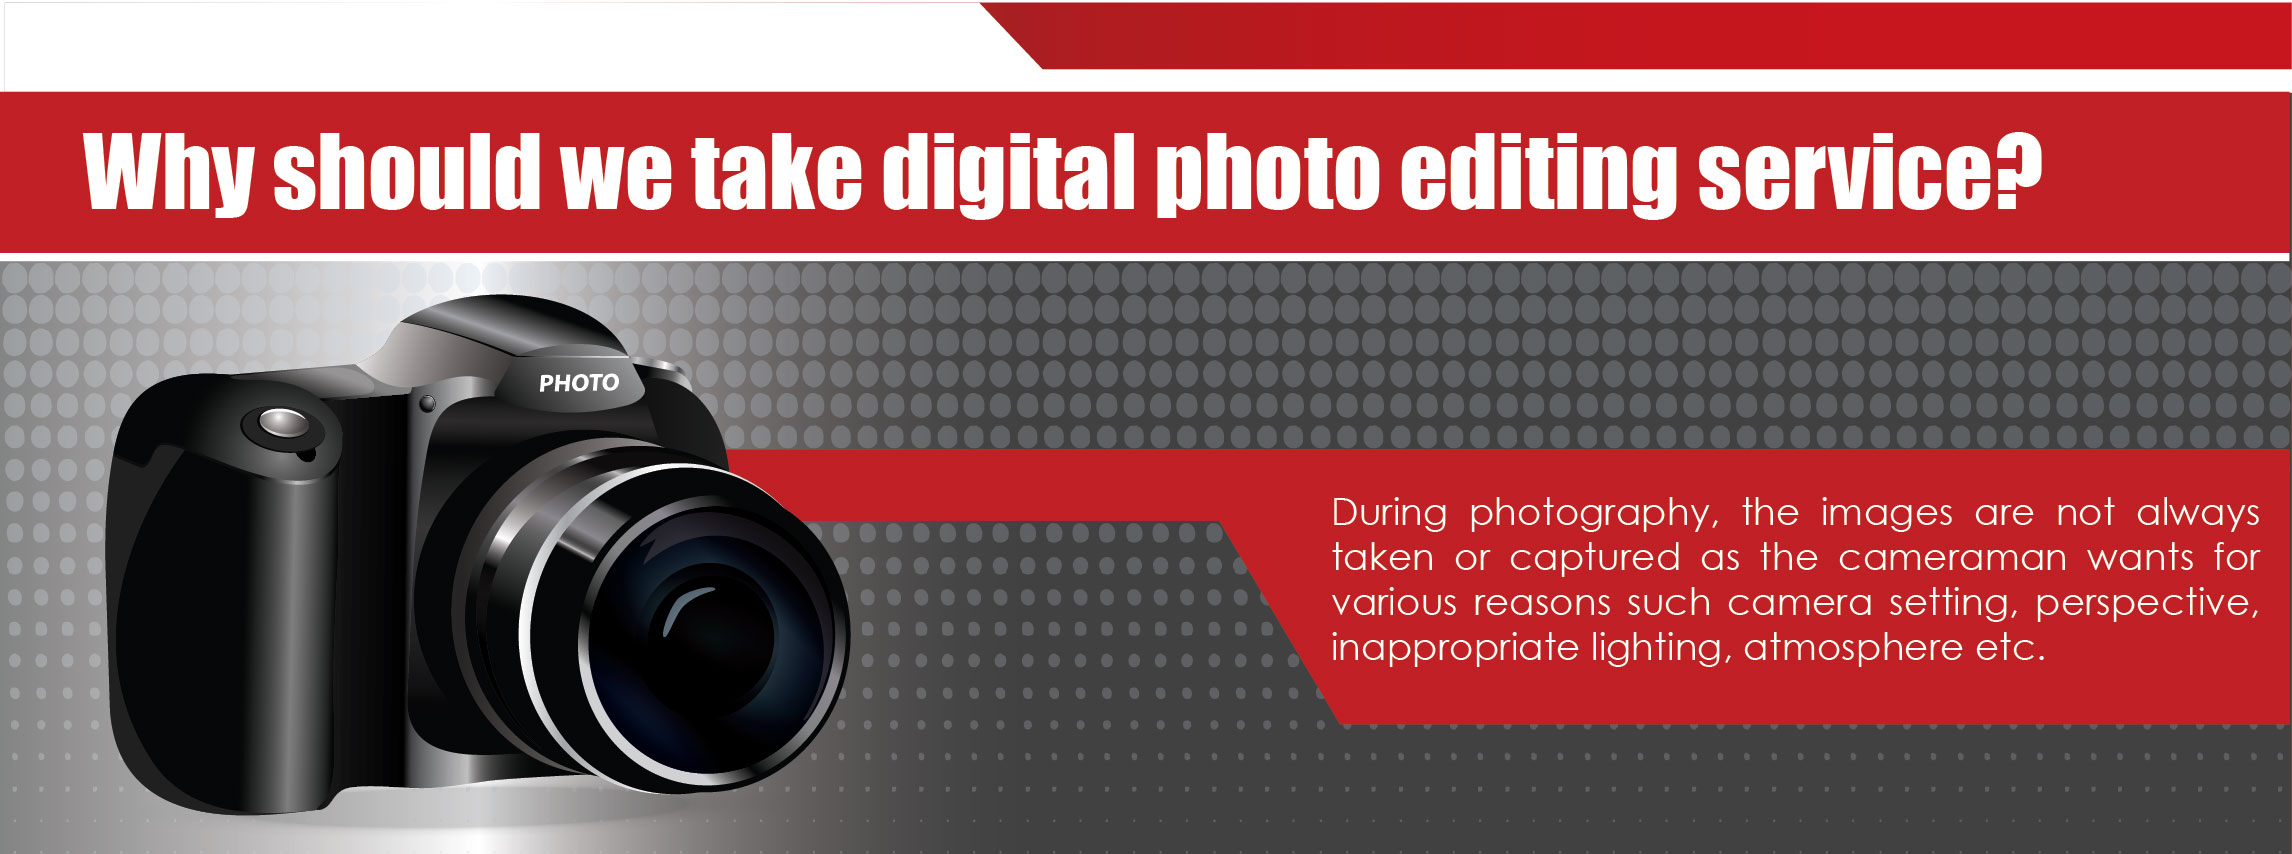 Why should we take digital photo editing service